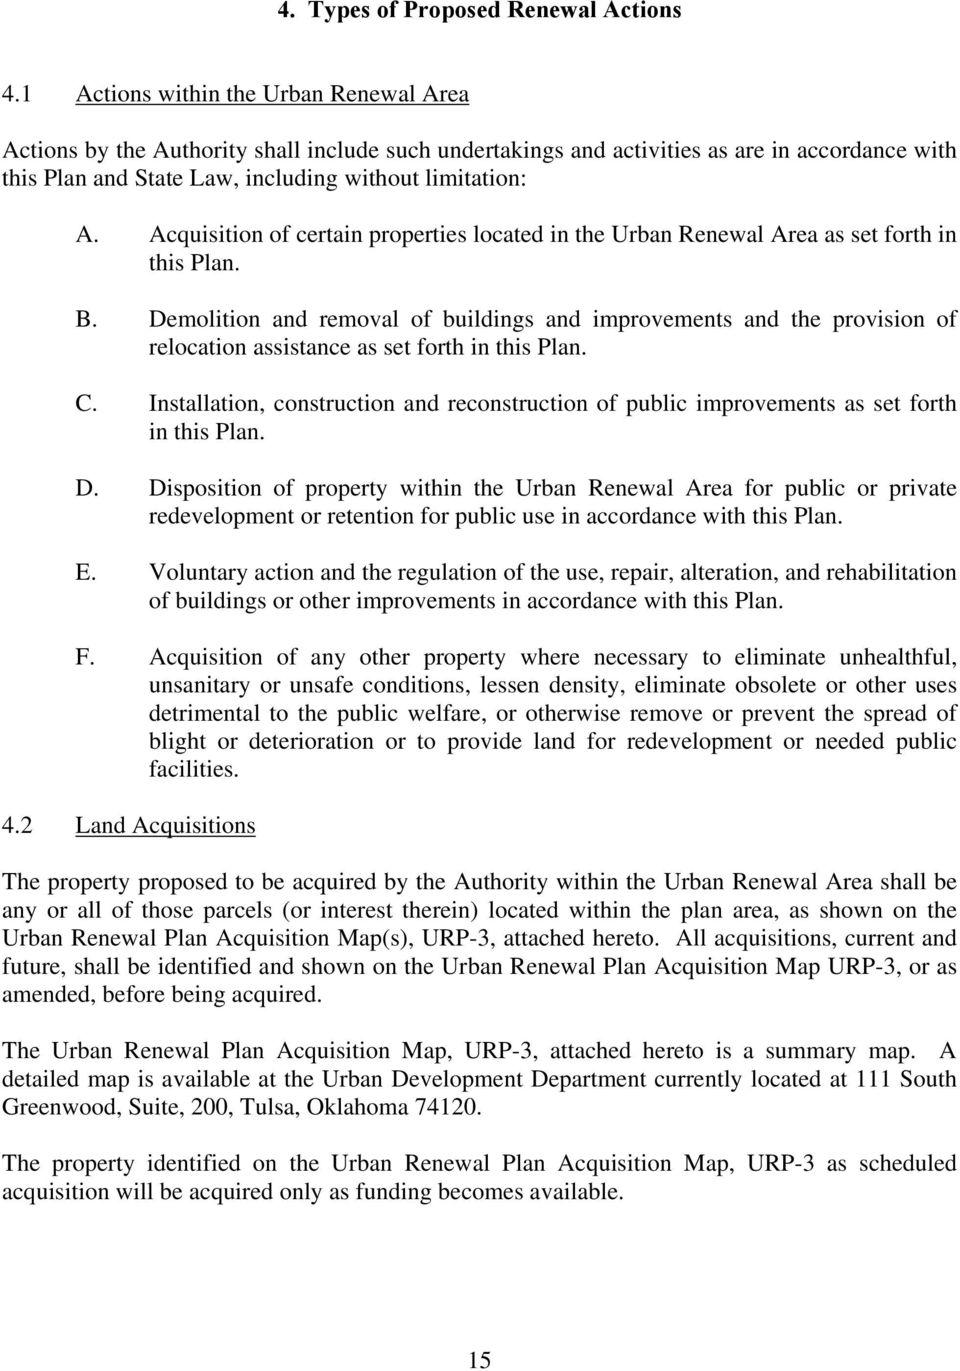 Acquisition of certain properties located in the Urban Renewal Area as set forth in this Plan. B.